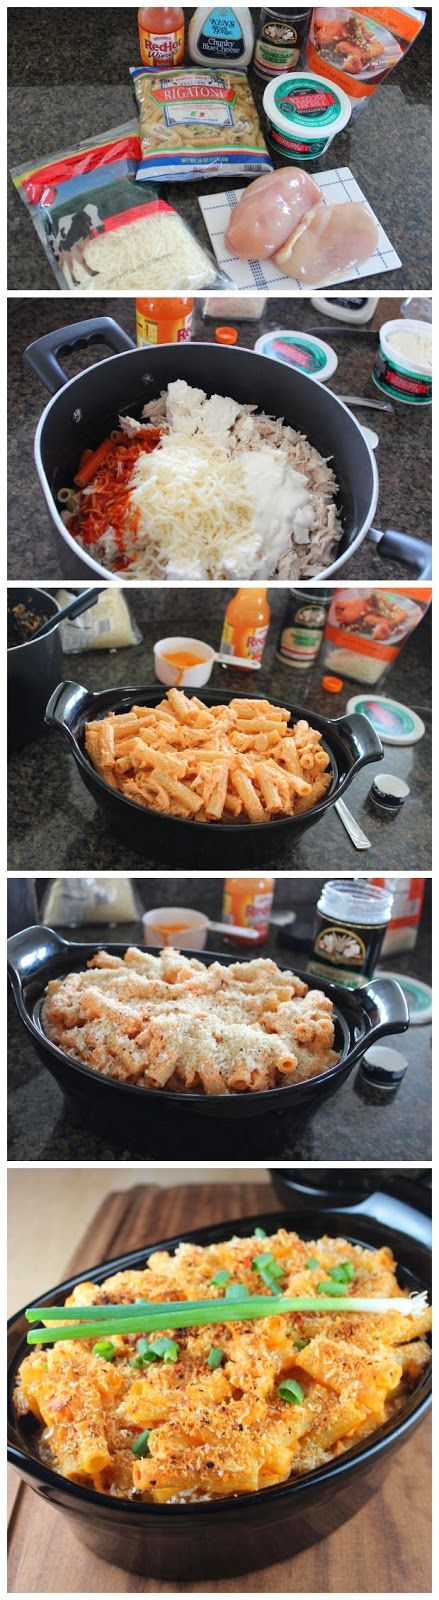 Buffalo Chicken Baked Pasta | Quick & Easy Recipes...I might actually like this without blue cheese. Maybe I would use ranch instead :-)